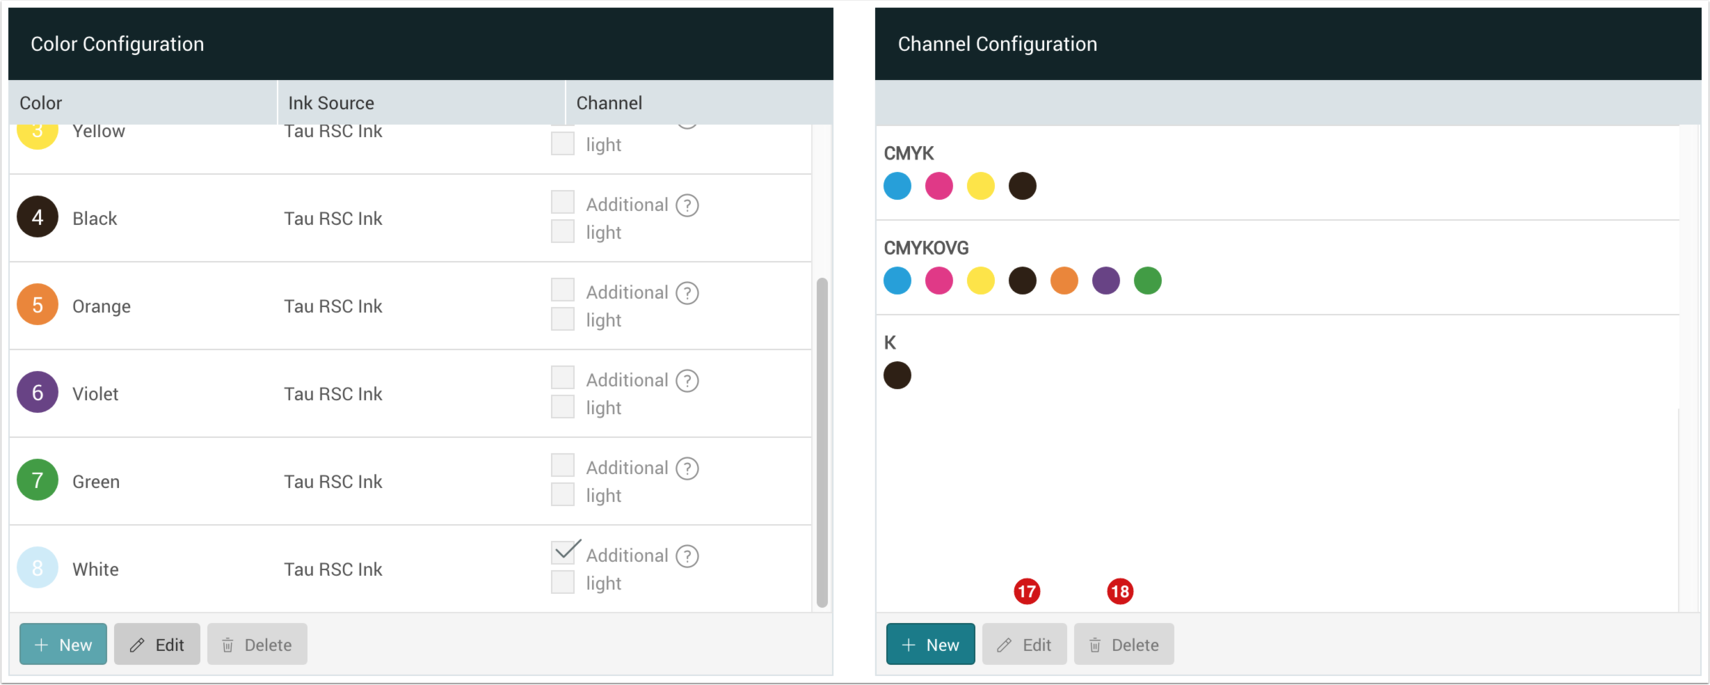 Create a new Channel Configuration